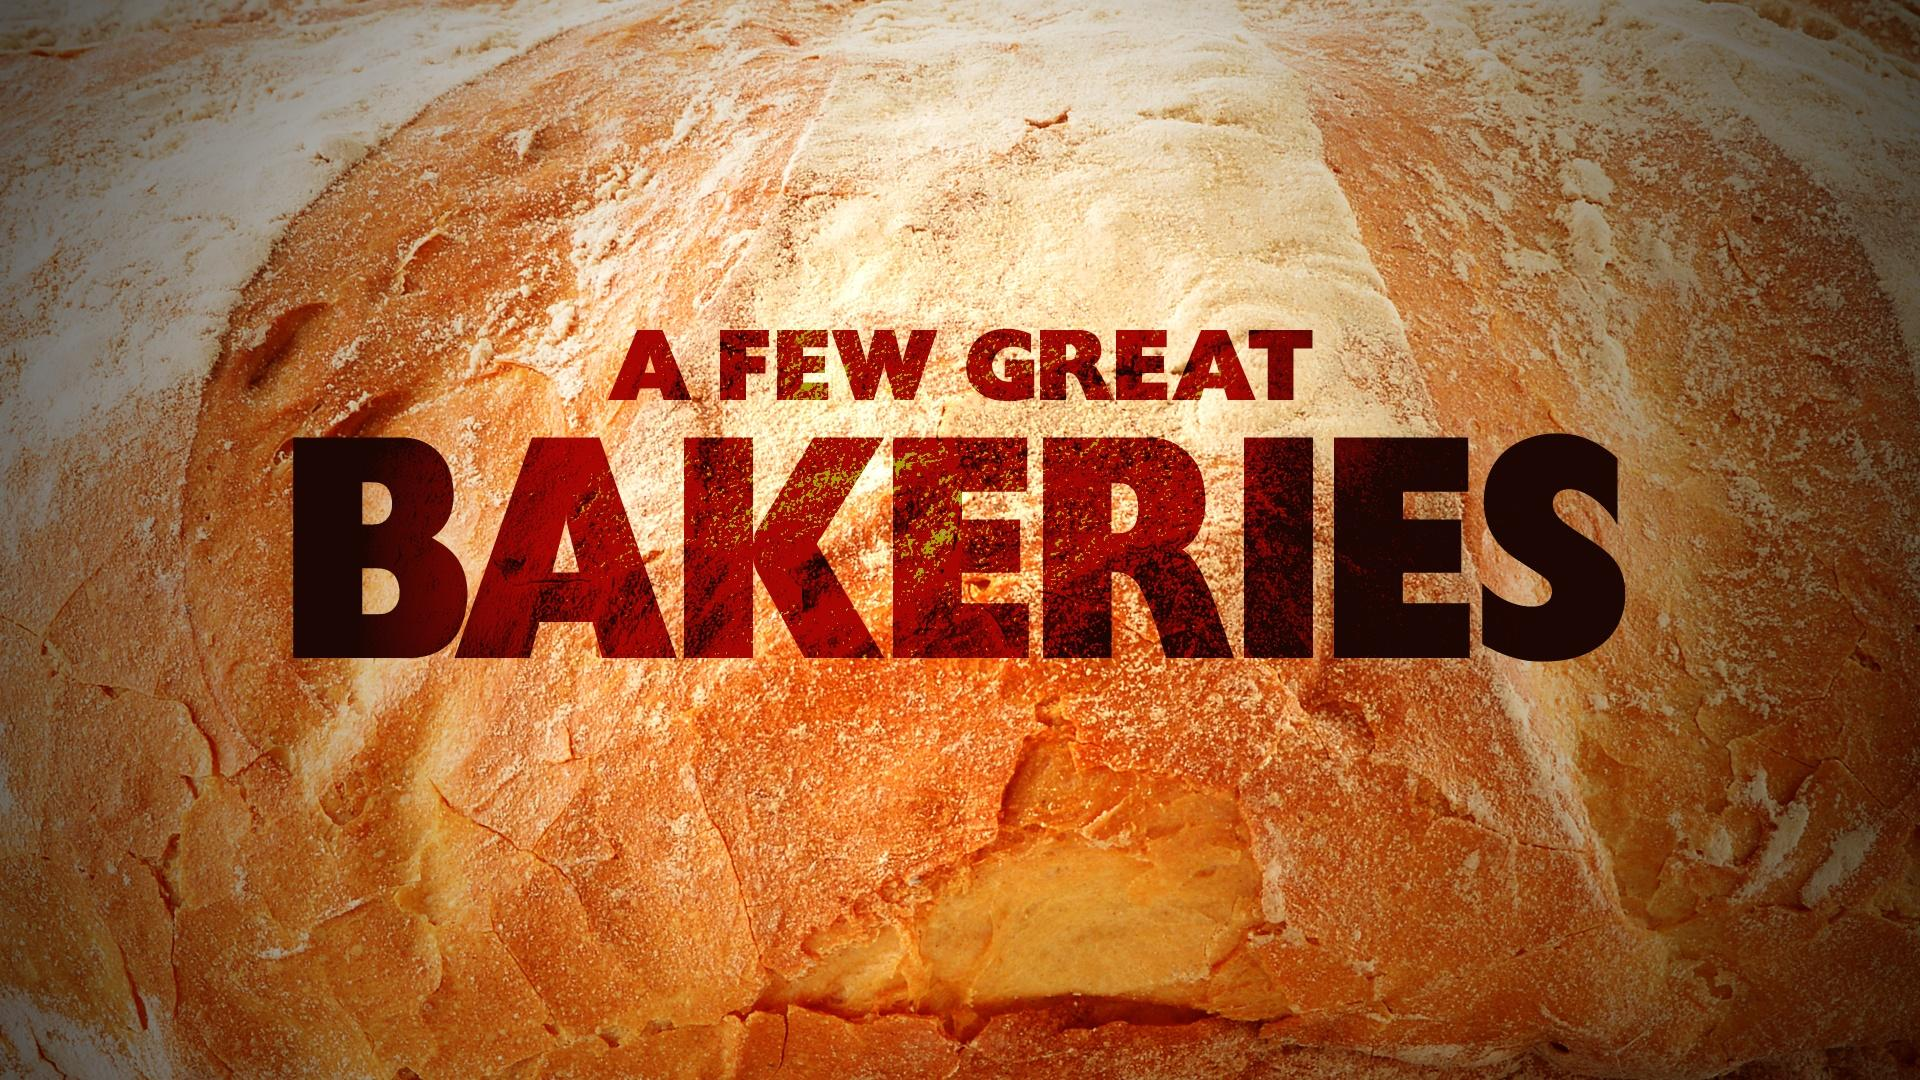 A Few Great Bakeries